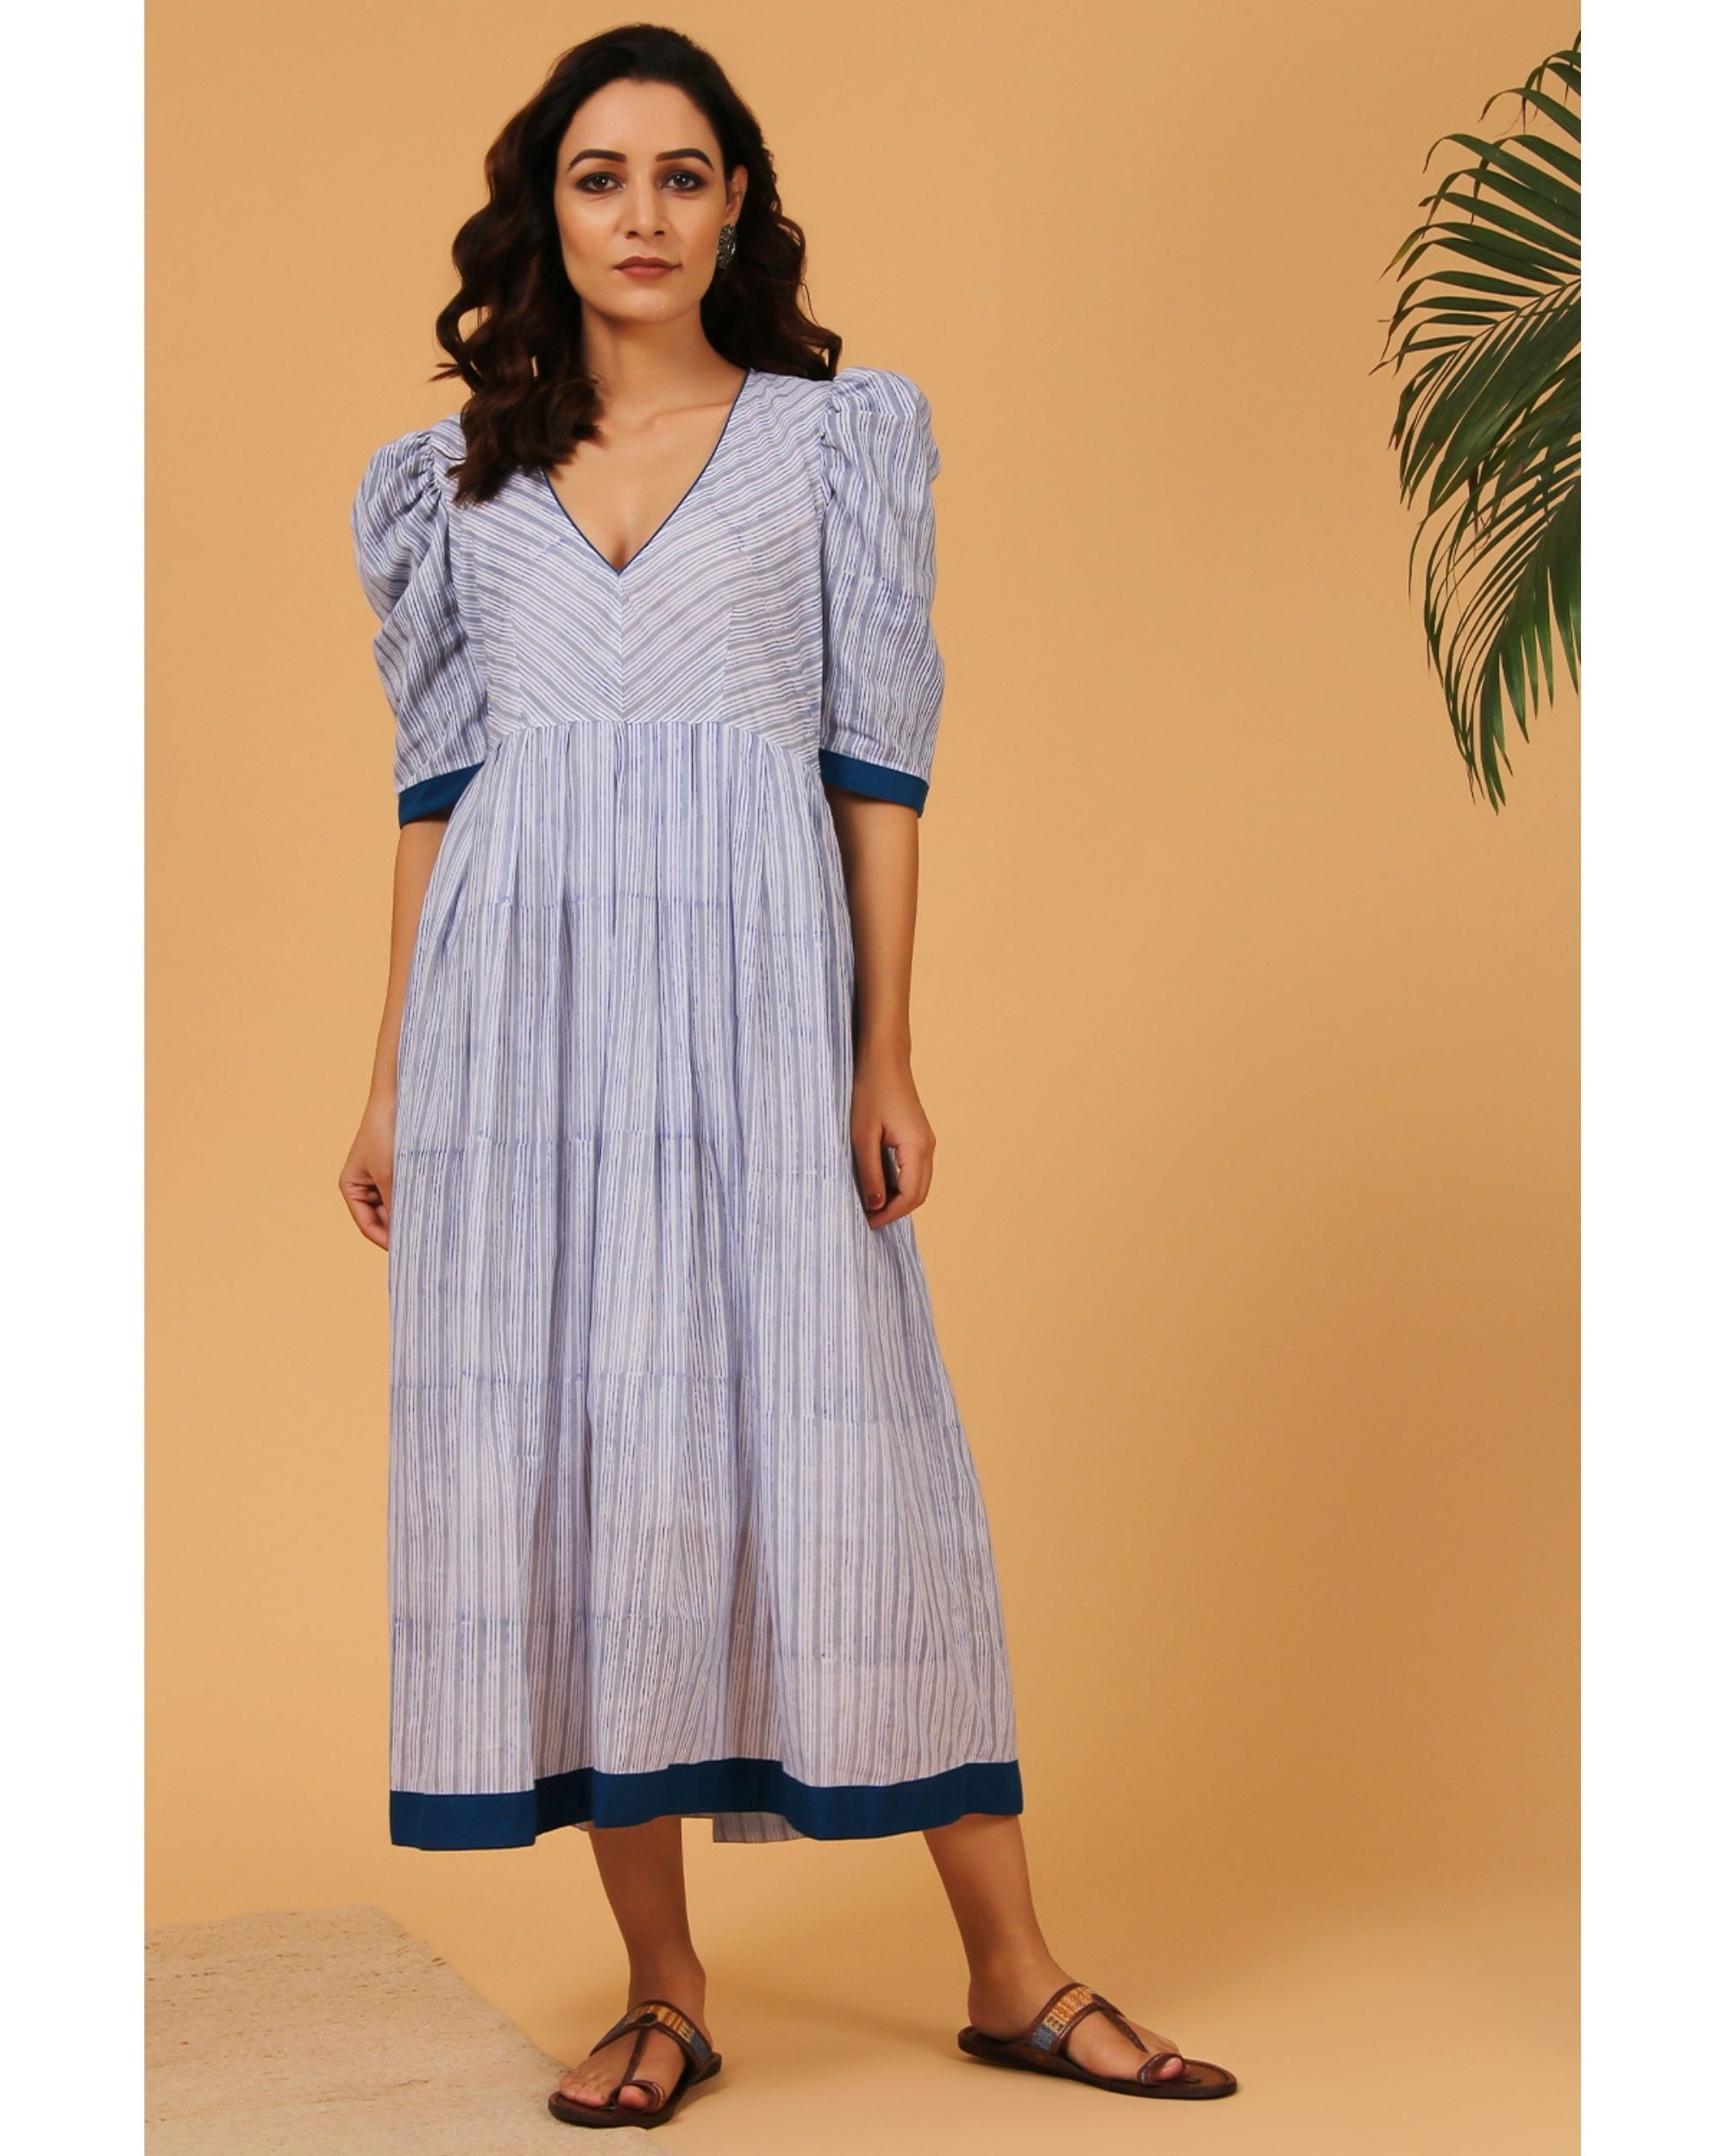 Blue and grey striped puffed sleeve dress